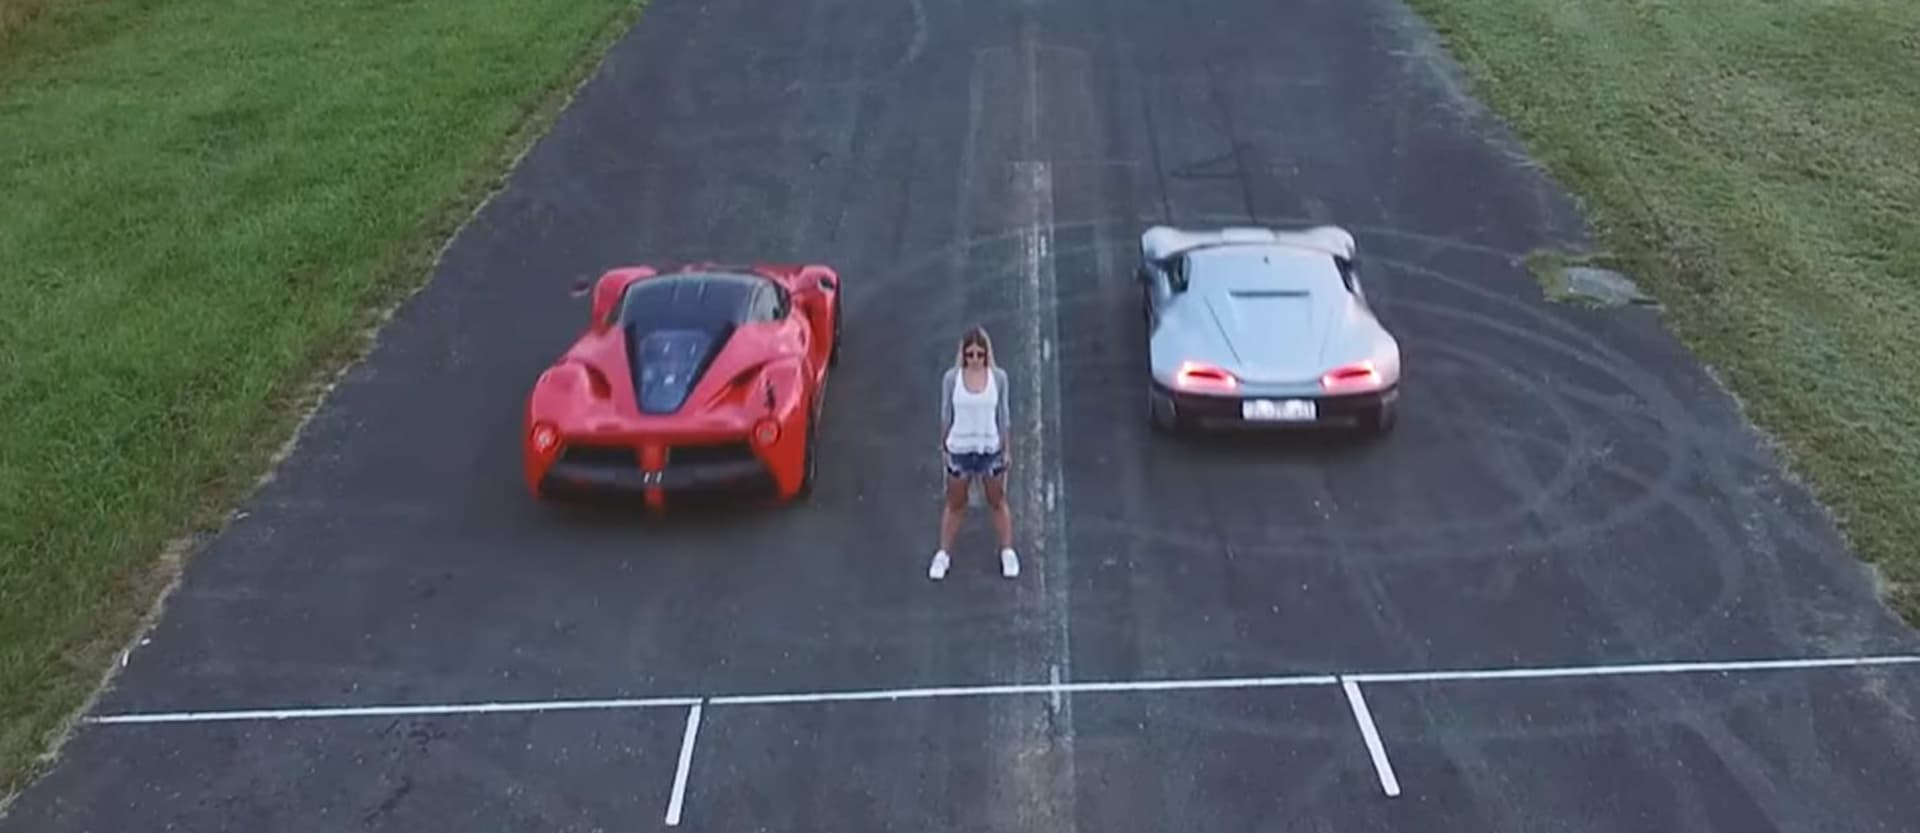 LaFerrari racing against electric car